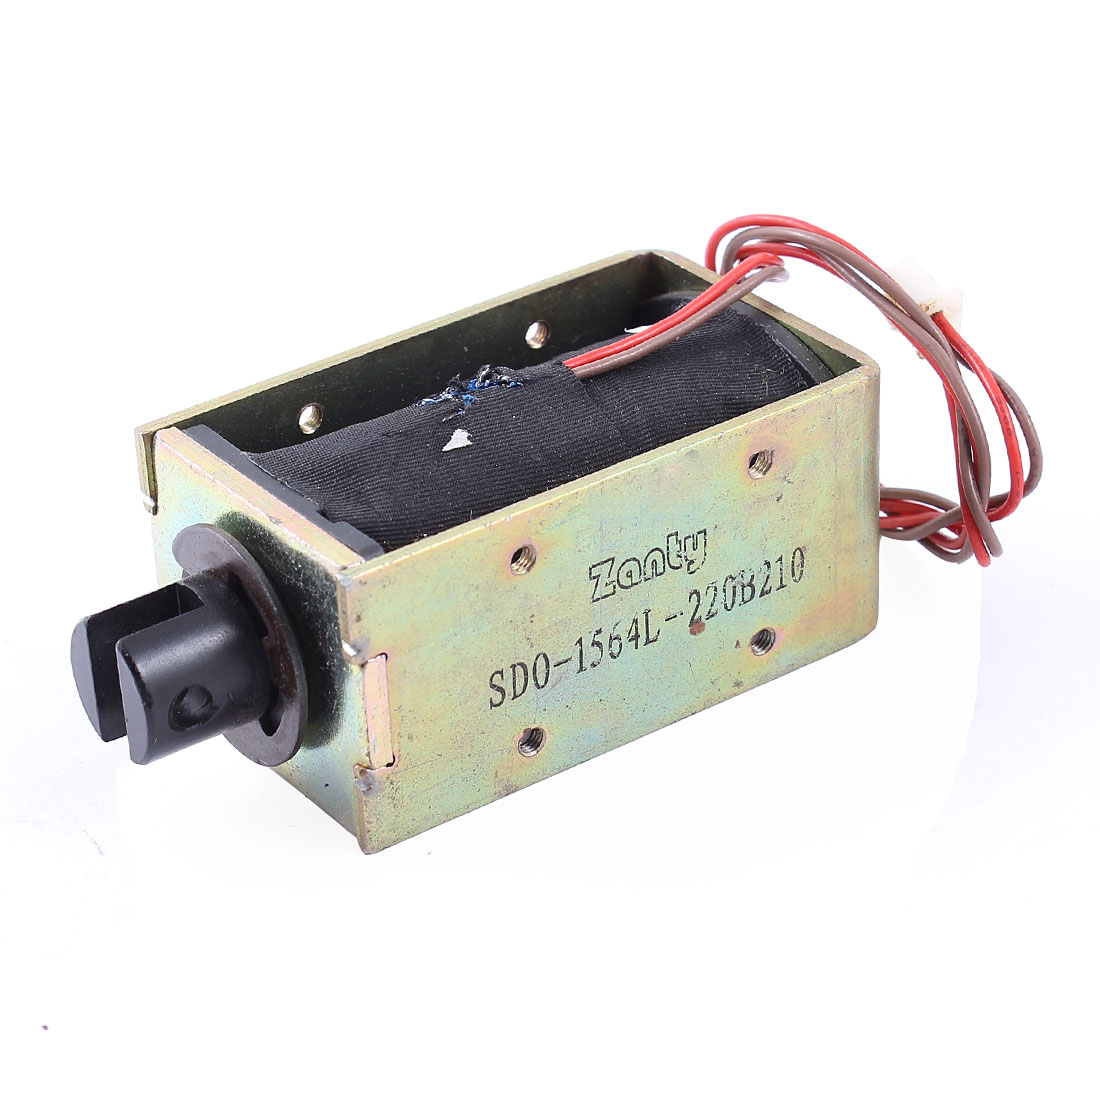 10mm/2Kg 15mm/1Kg 230.5W Power Wired Linear Motion Open Frame Pull Type Solenoid Electromagnet 220V